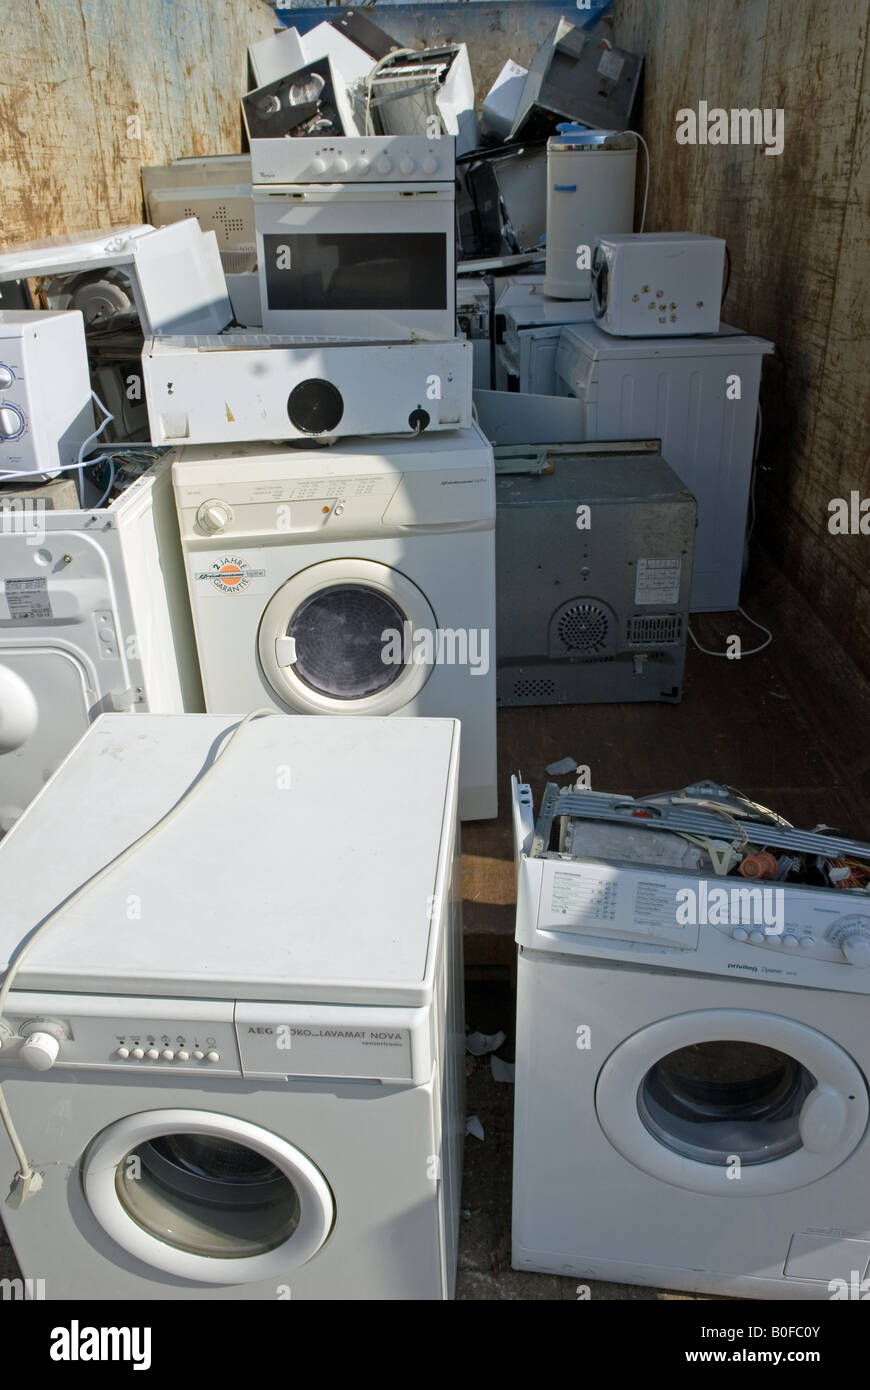 Disused kitchen appliances at a recycling centre, Oldenburg, Lower ...